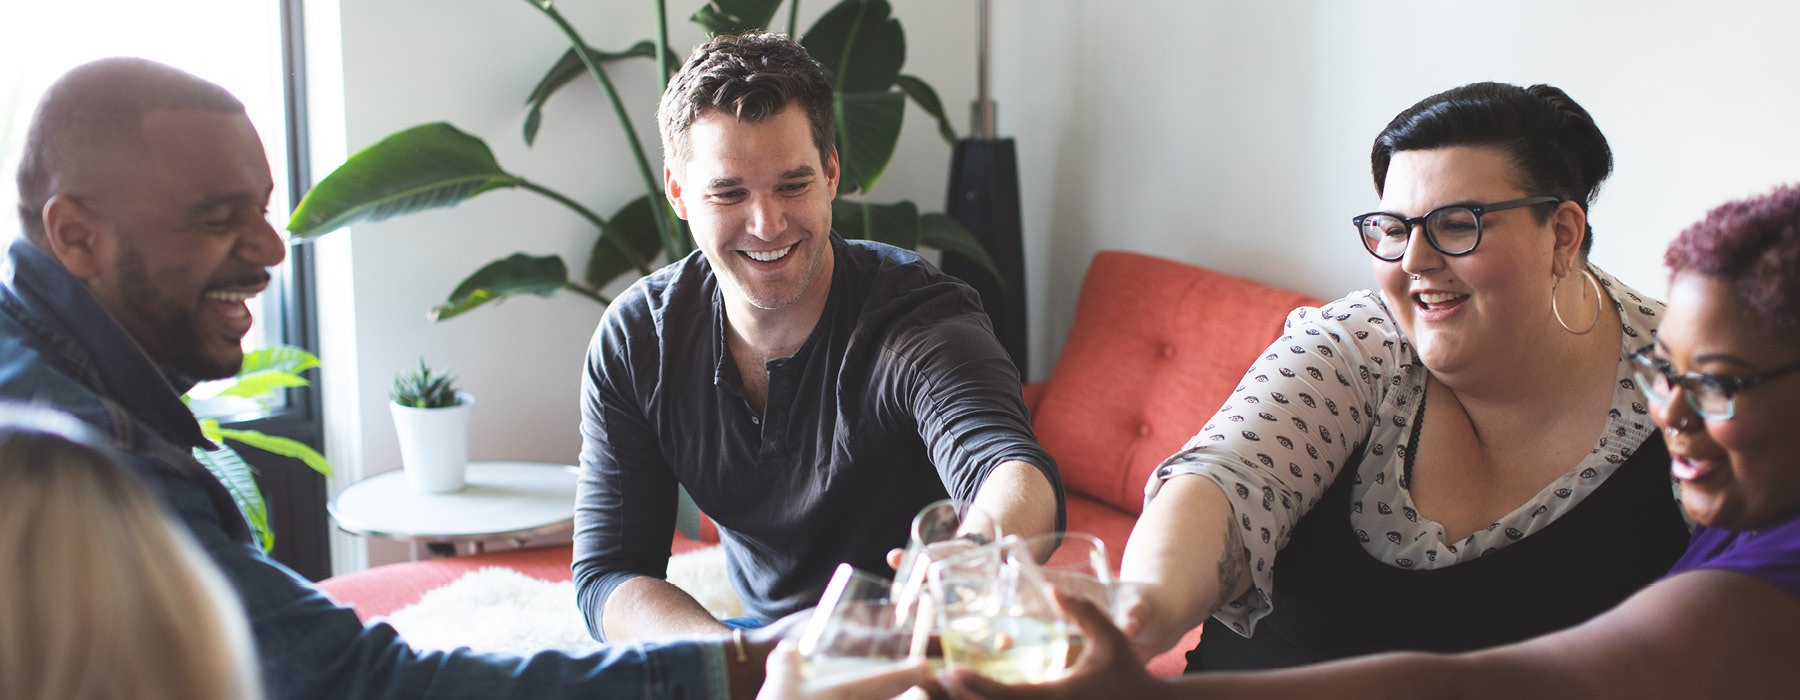 friends clink glasses in bright living room